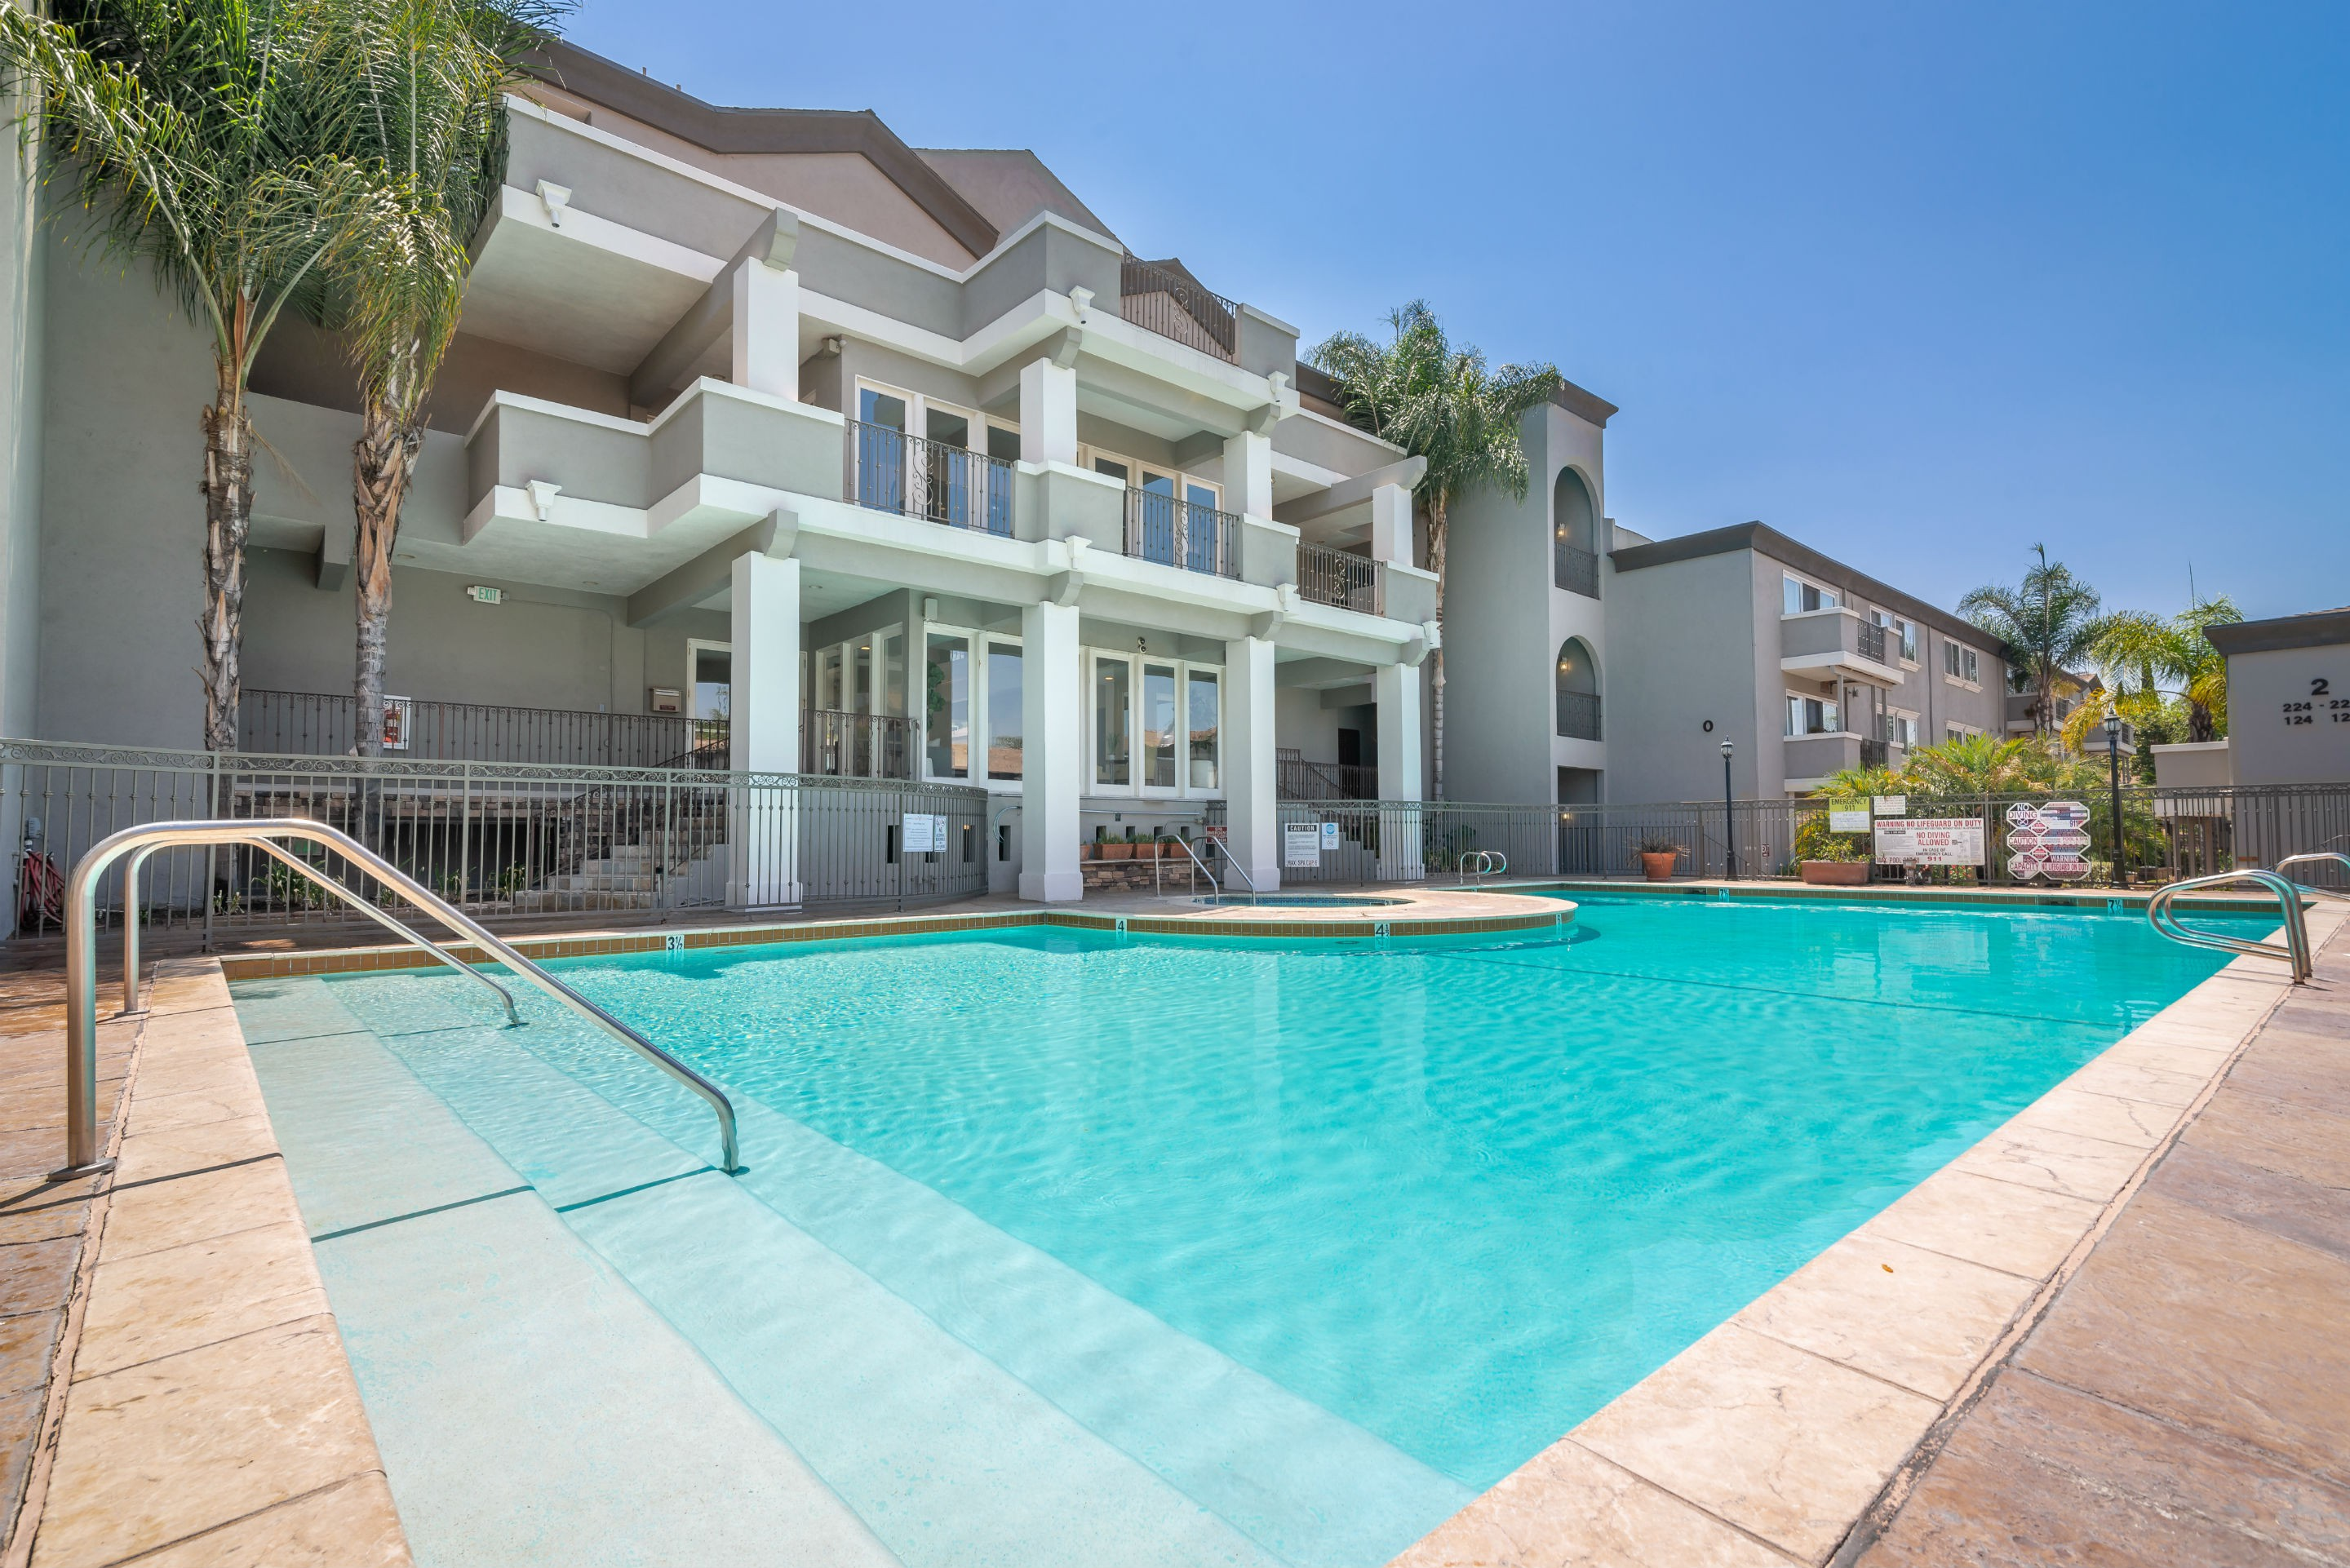 Towne At Glendale for rent